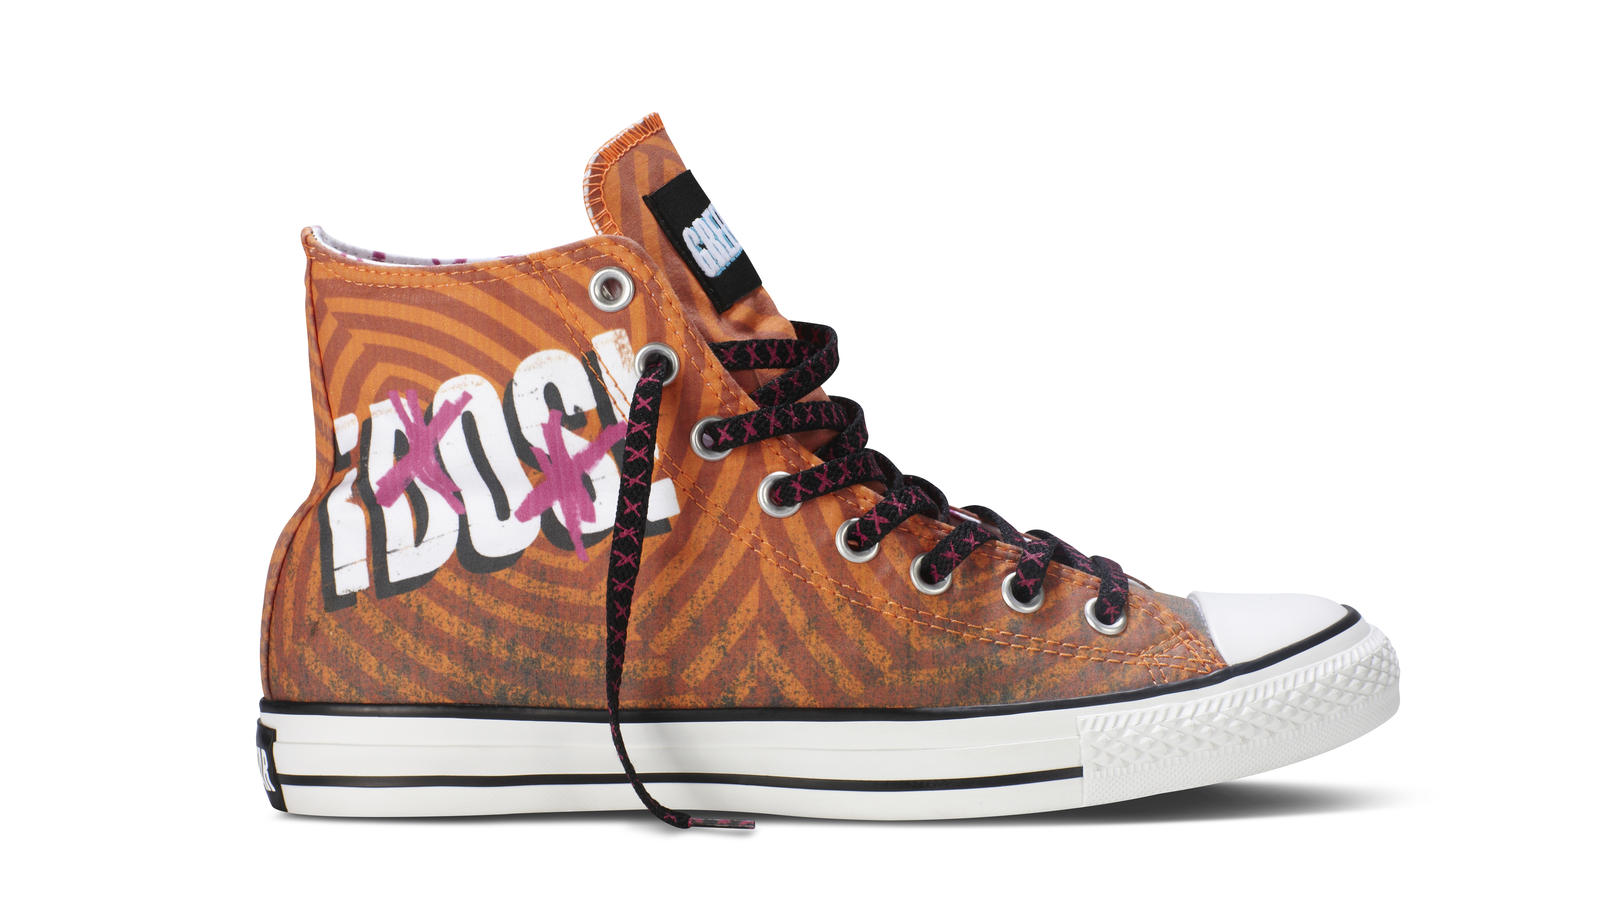 Converse Unveils Second Shoe In Chuck Taylor All Star Collection ... 7aa5e0ab5